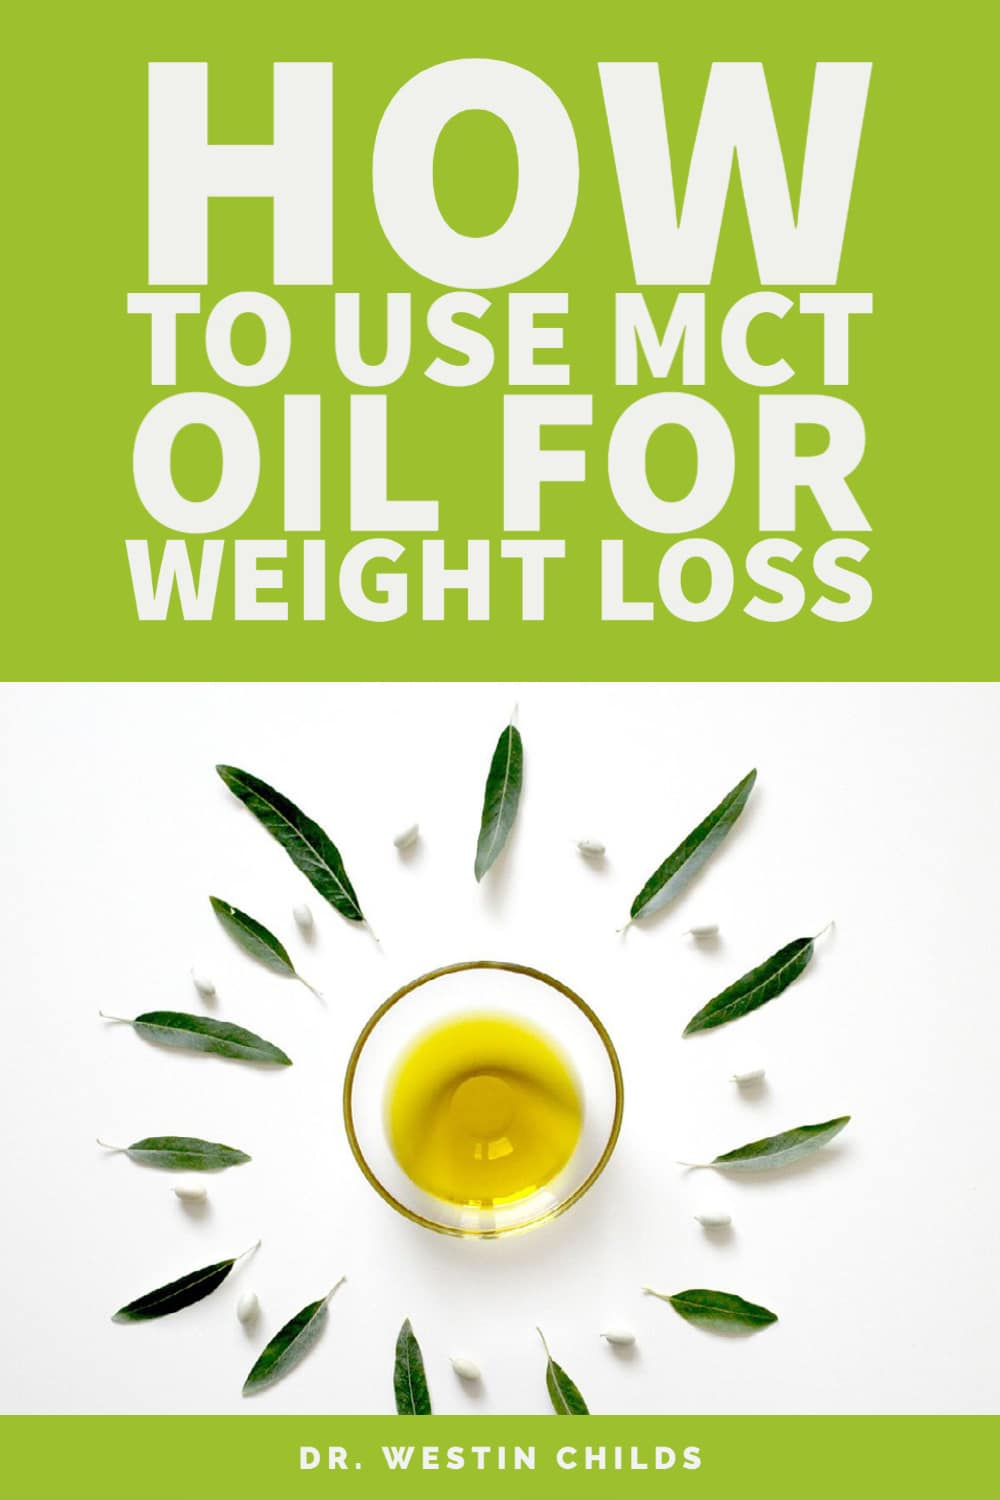 how to use mct oil for weight loss